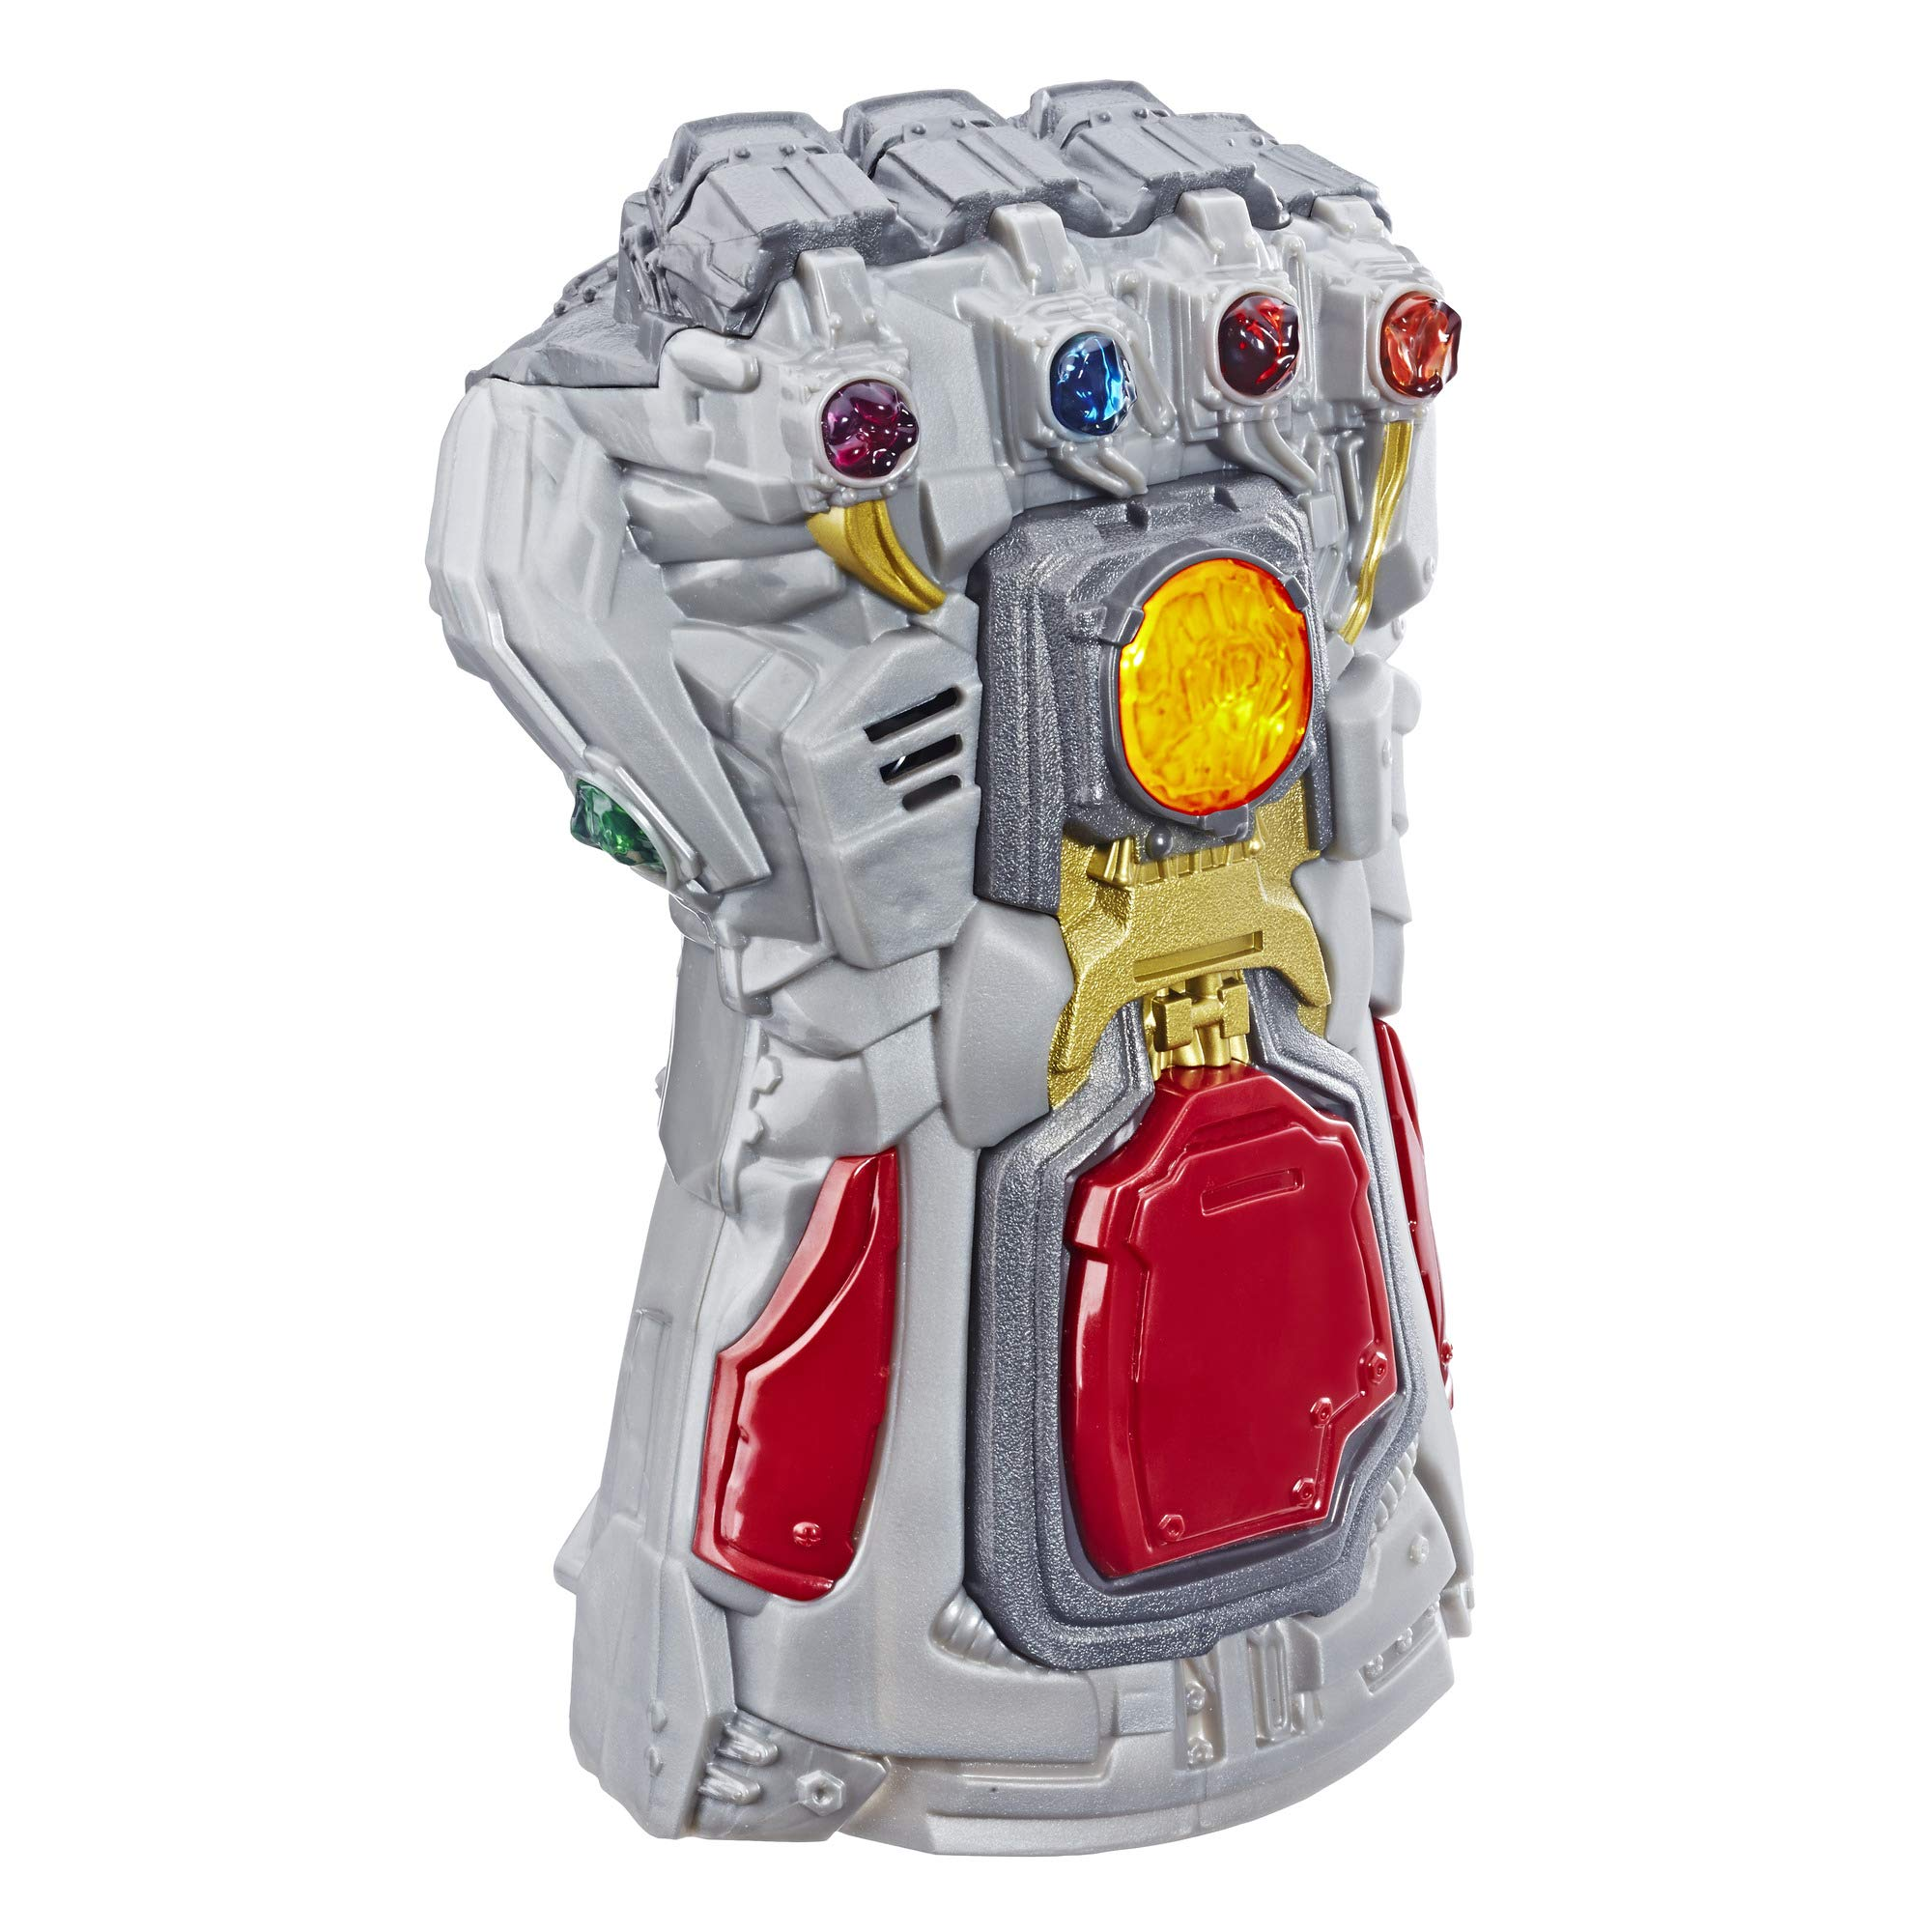 Avengers Marvel Endgame Electronic Fist Roleplay Toy with Lights & Sounds for Kids Ages 5 & Up by Avengers